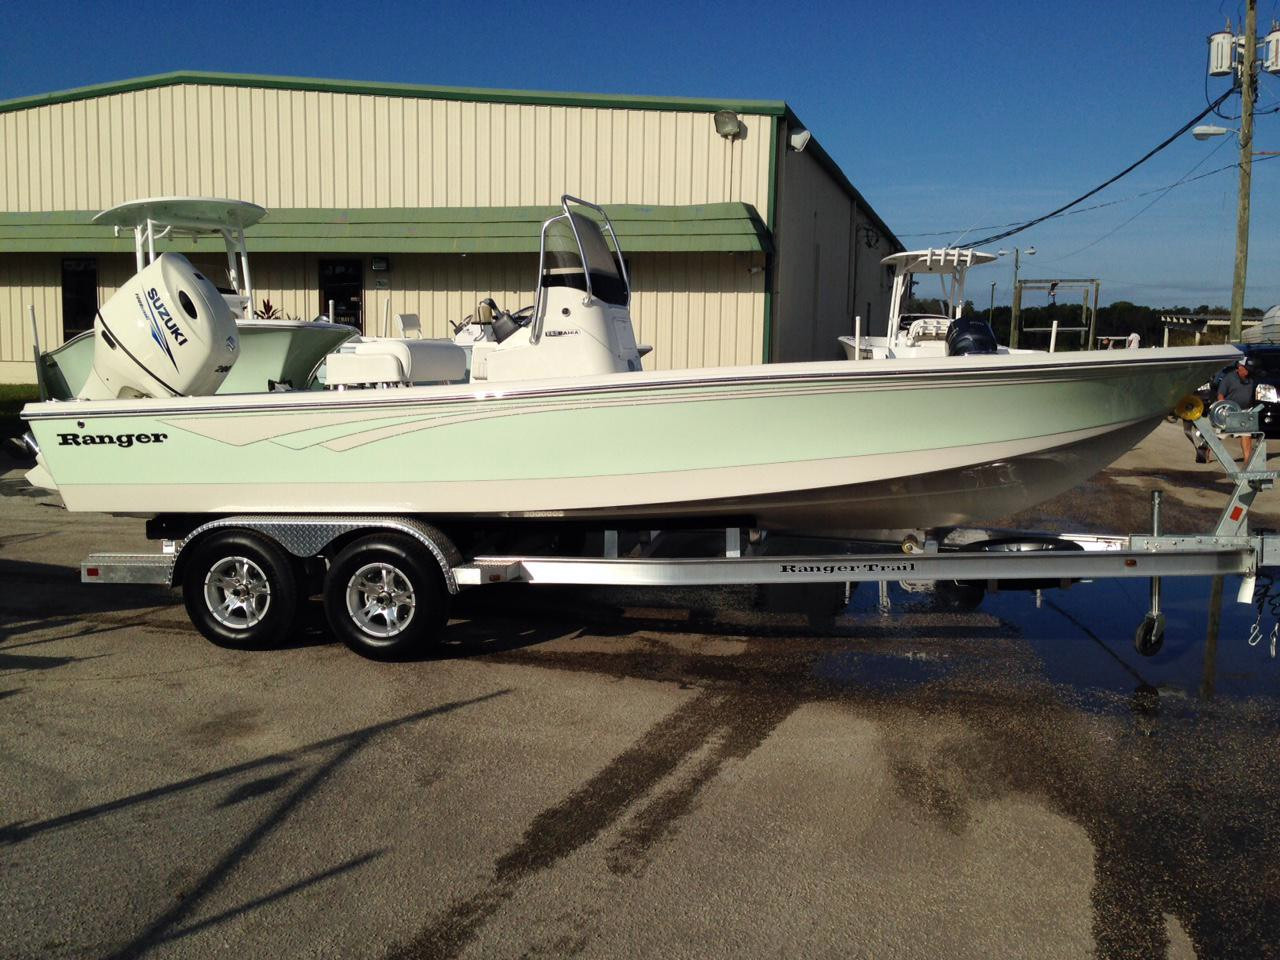 2016 New Ranger 220 Bahia Bay Boat For Sale - Tampa, FL ...